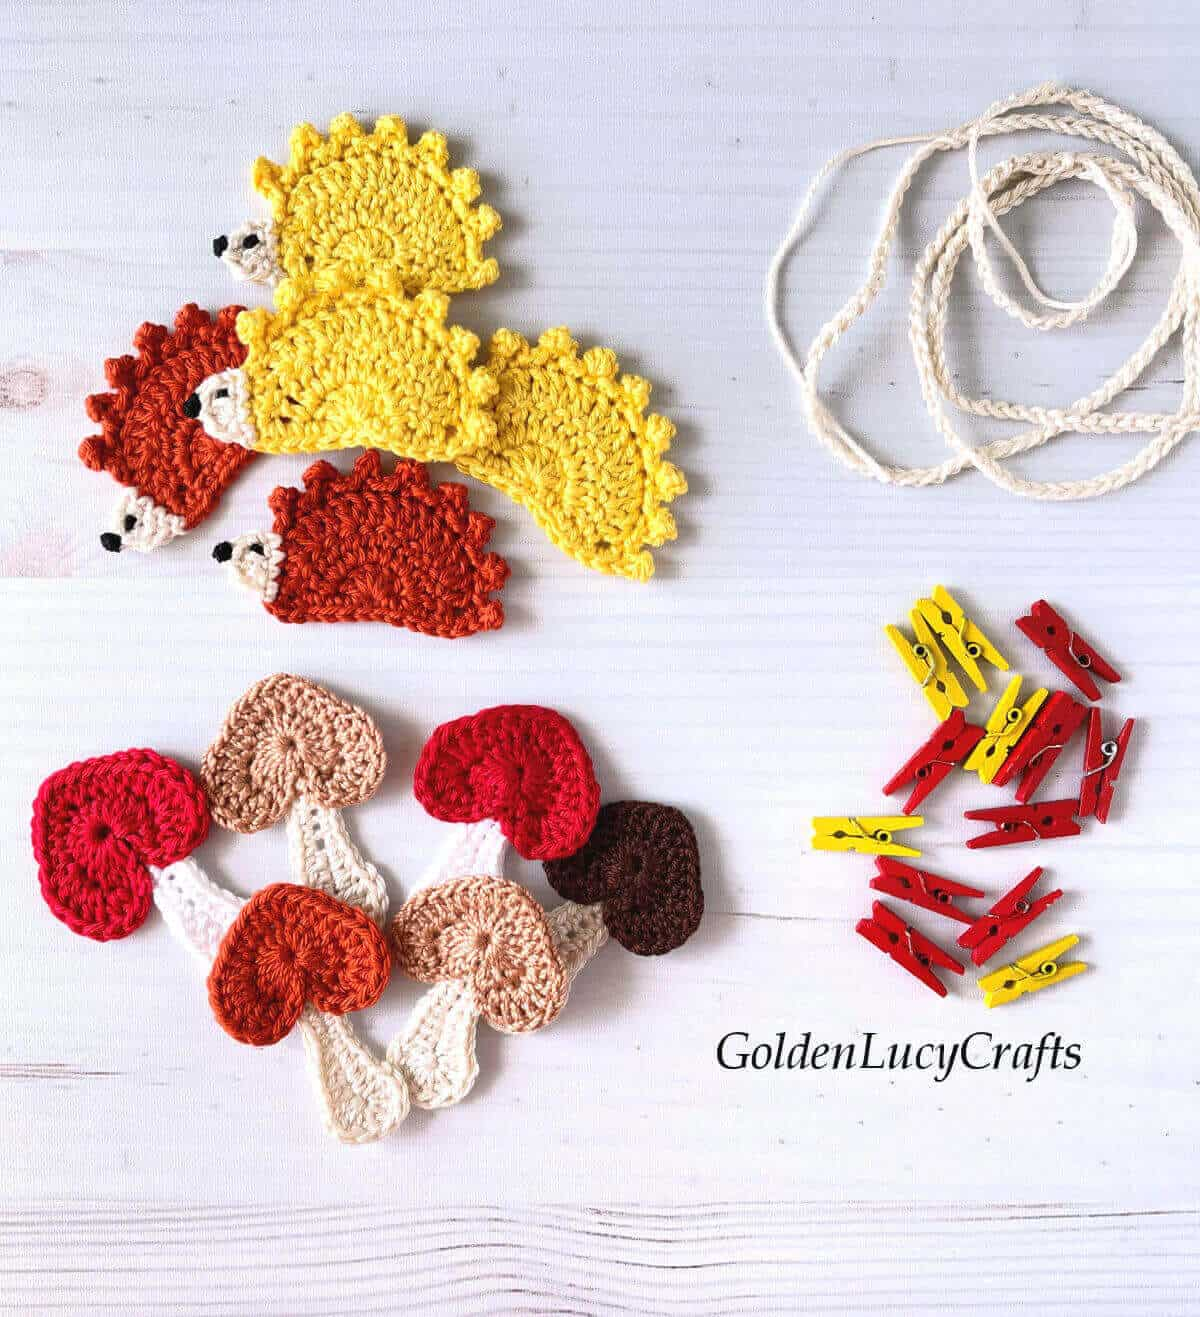 Crocheted hedgehog and mushroom appliques, red and yellow clothespins, crocheted string.